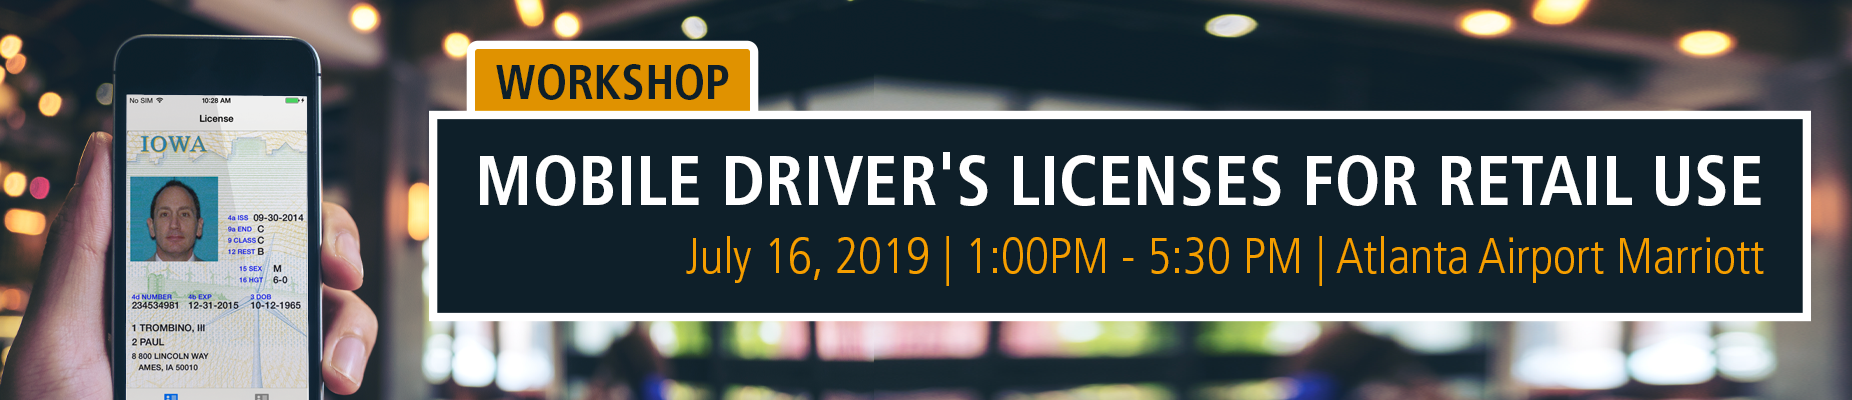 Workshop: Mobile Driver's Licenses for Retail Use